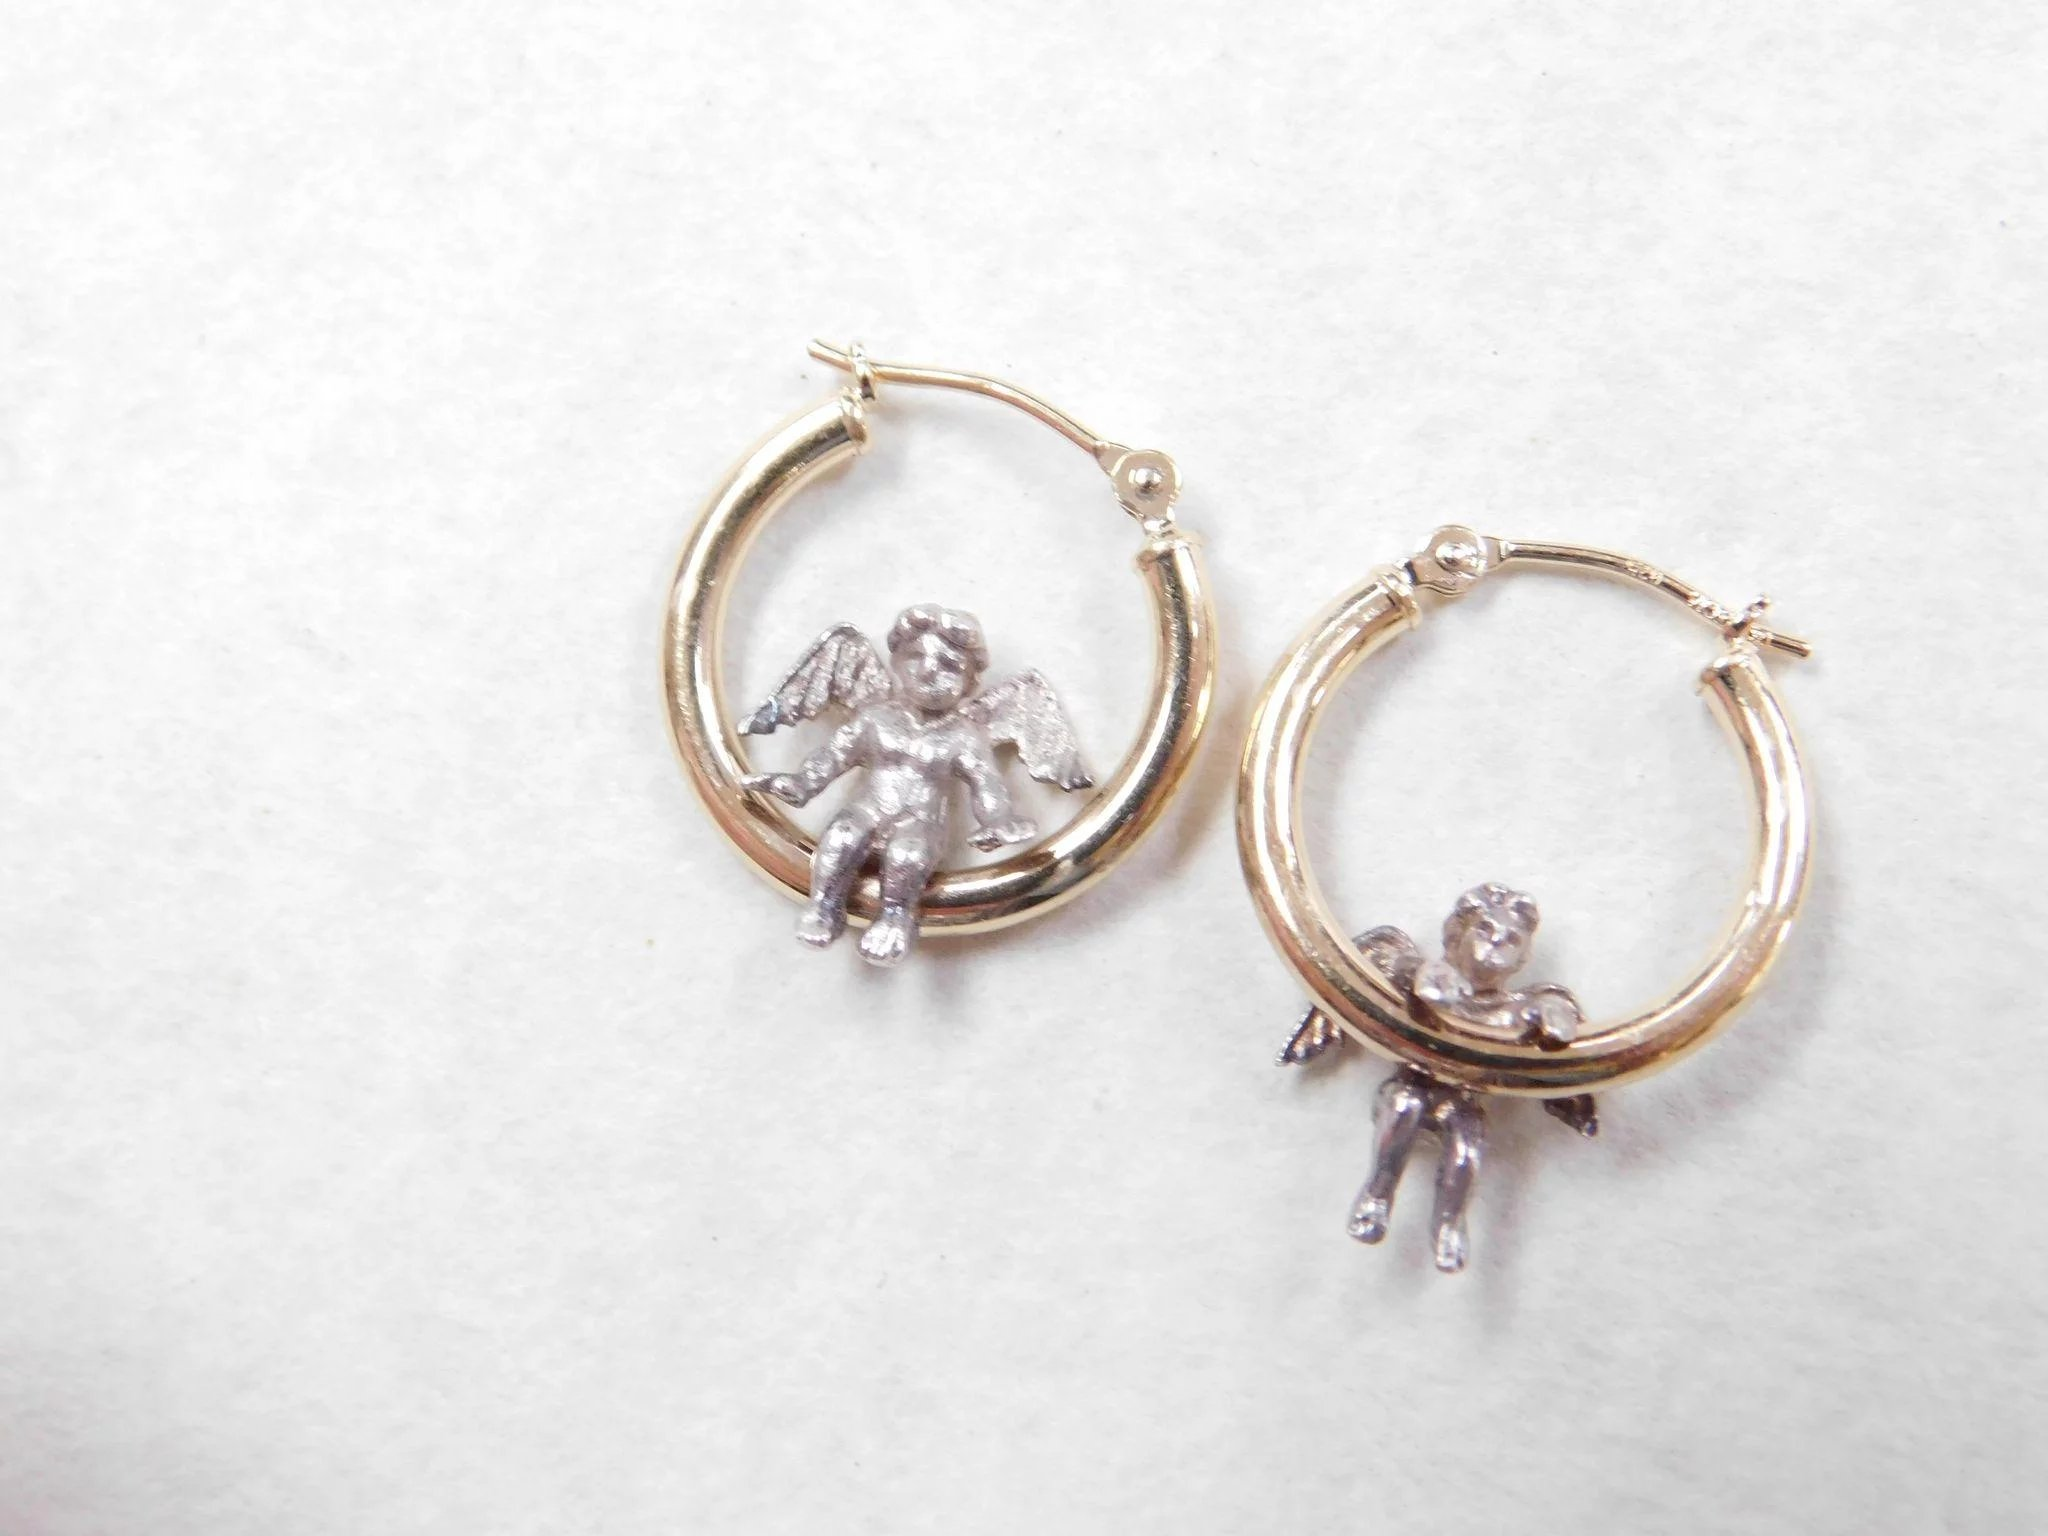 Vintage Sterling Silver And 14k Gold Angel Hoop Earrings